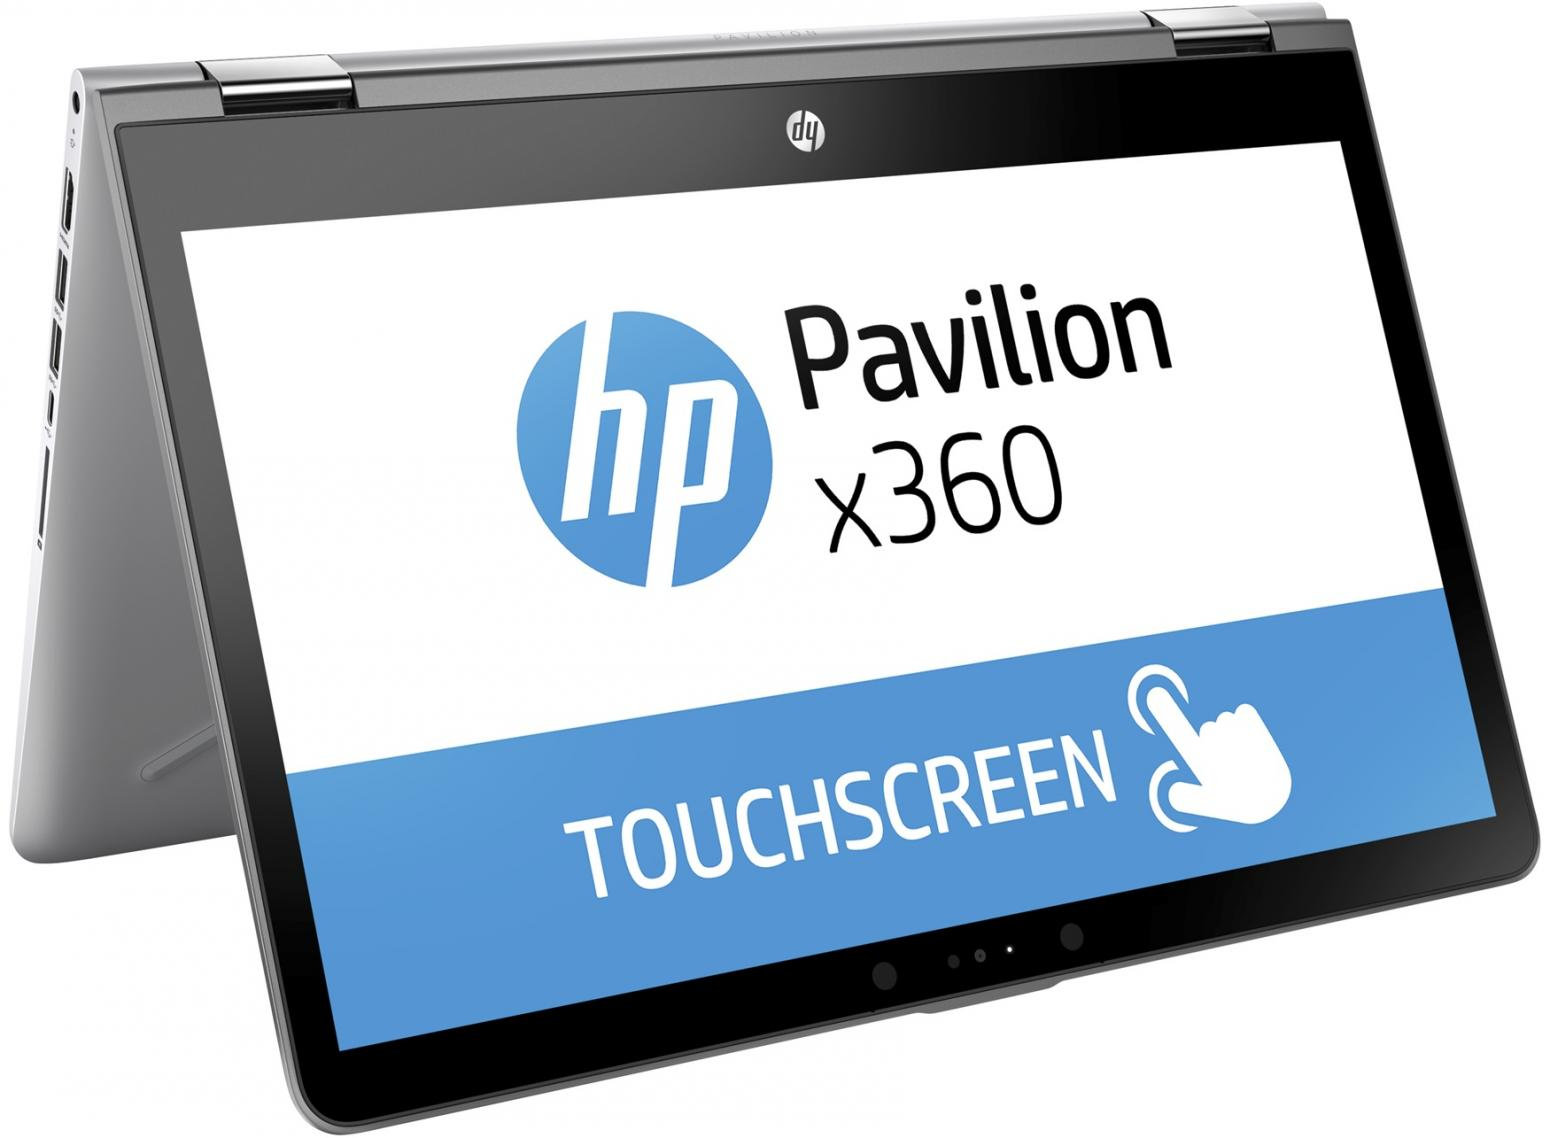 Ordinateur portable HP Pavilion x360 14-ba034nf SSD Argent Tactile IPS - photo 3